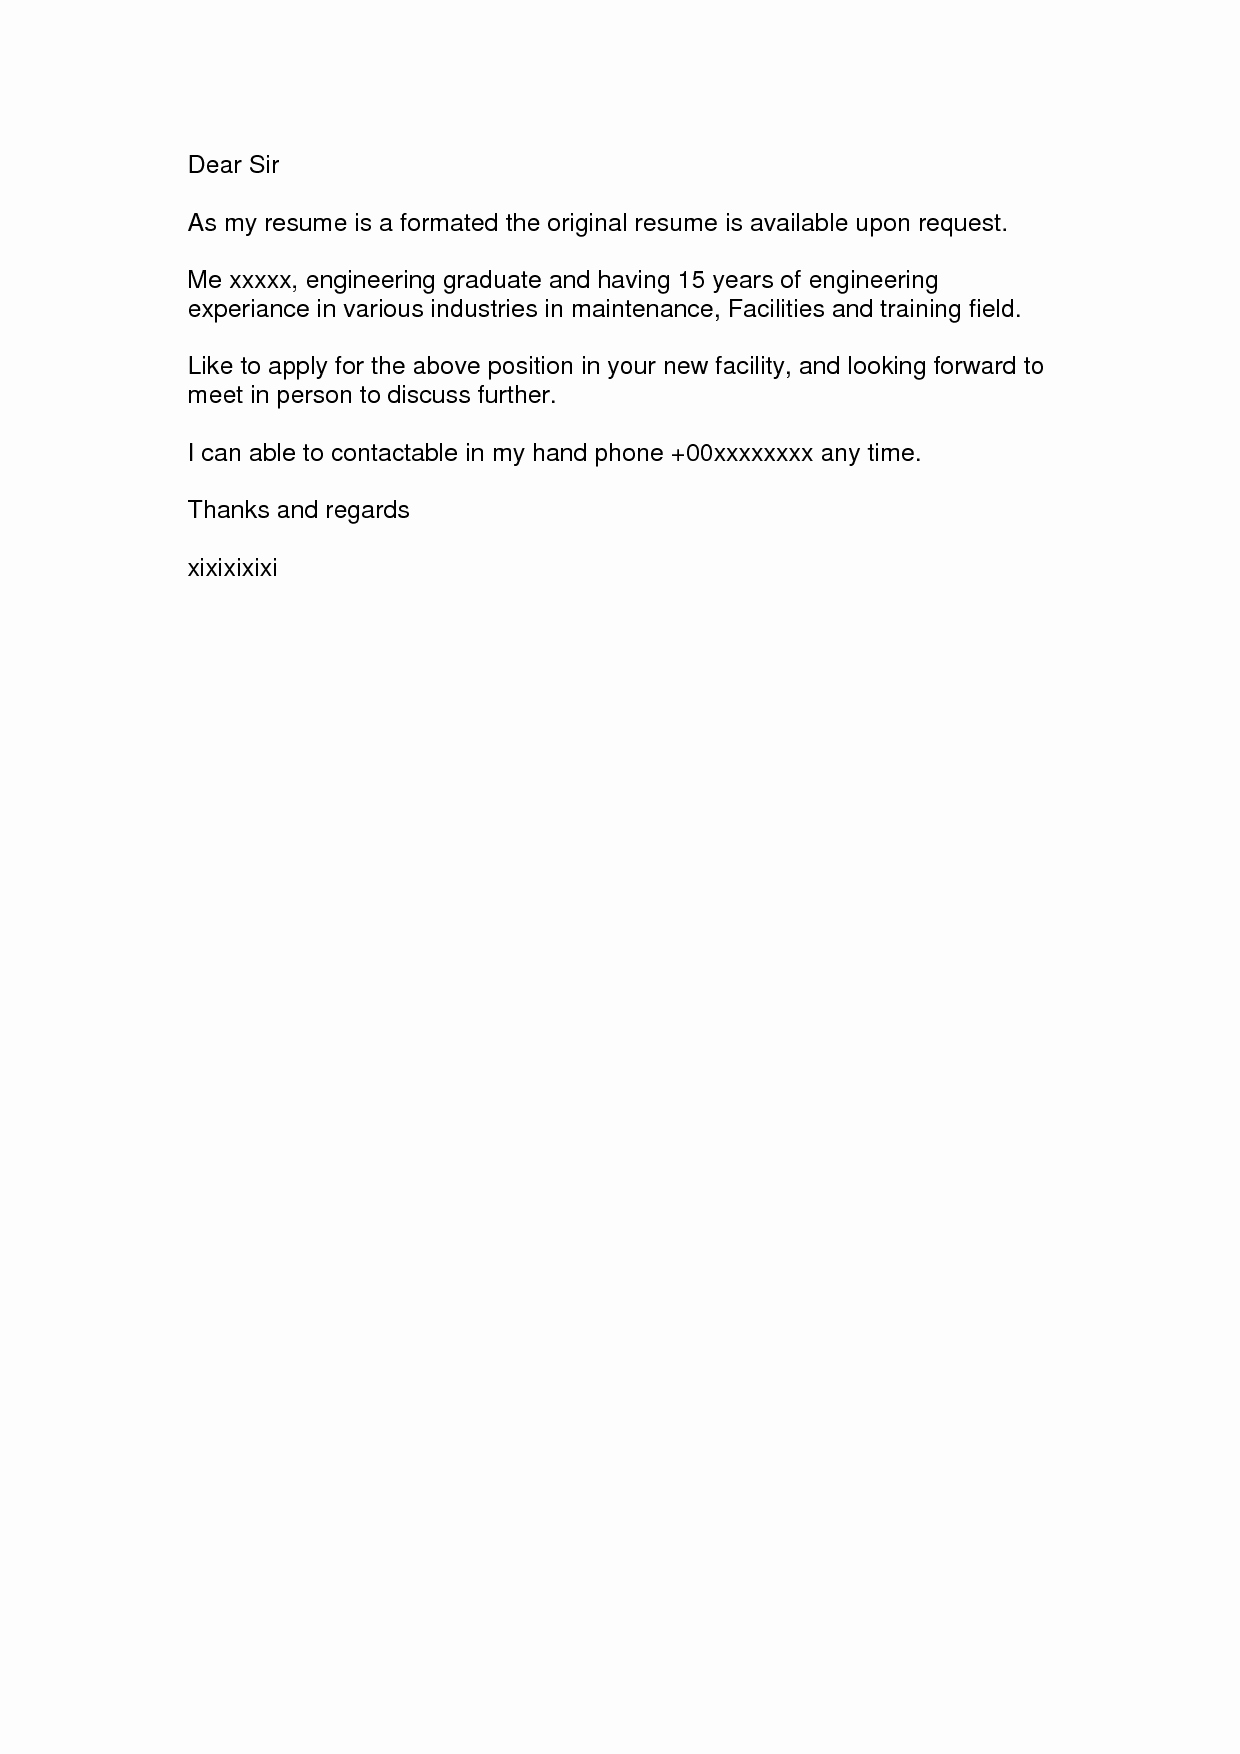 Simple Cover Letter Sample Luxury Simple Cover Letter Easy Template Pix Widescreensimple